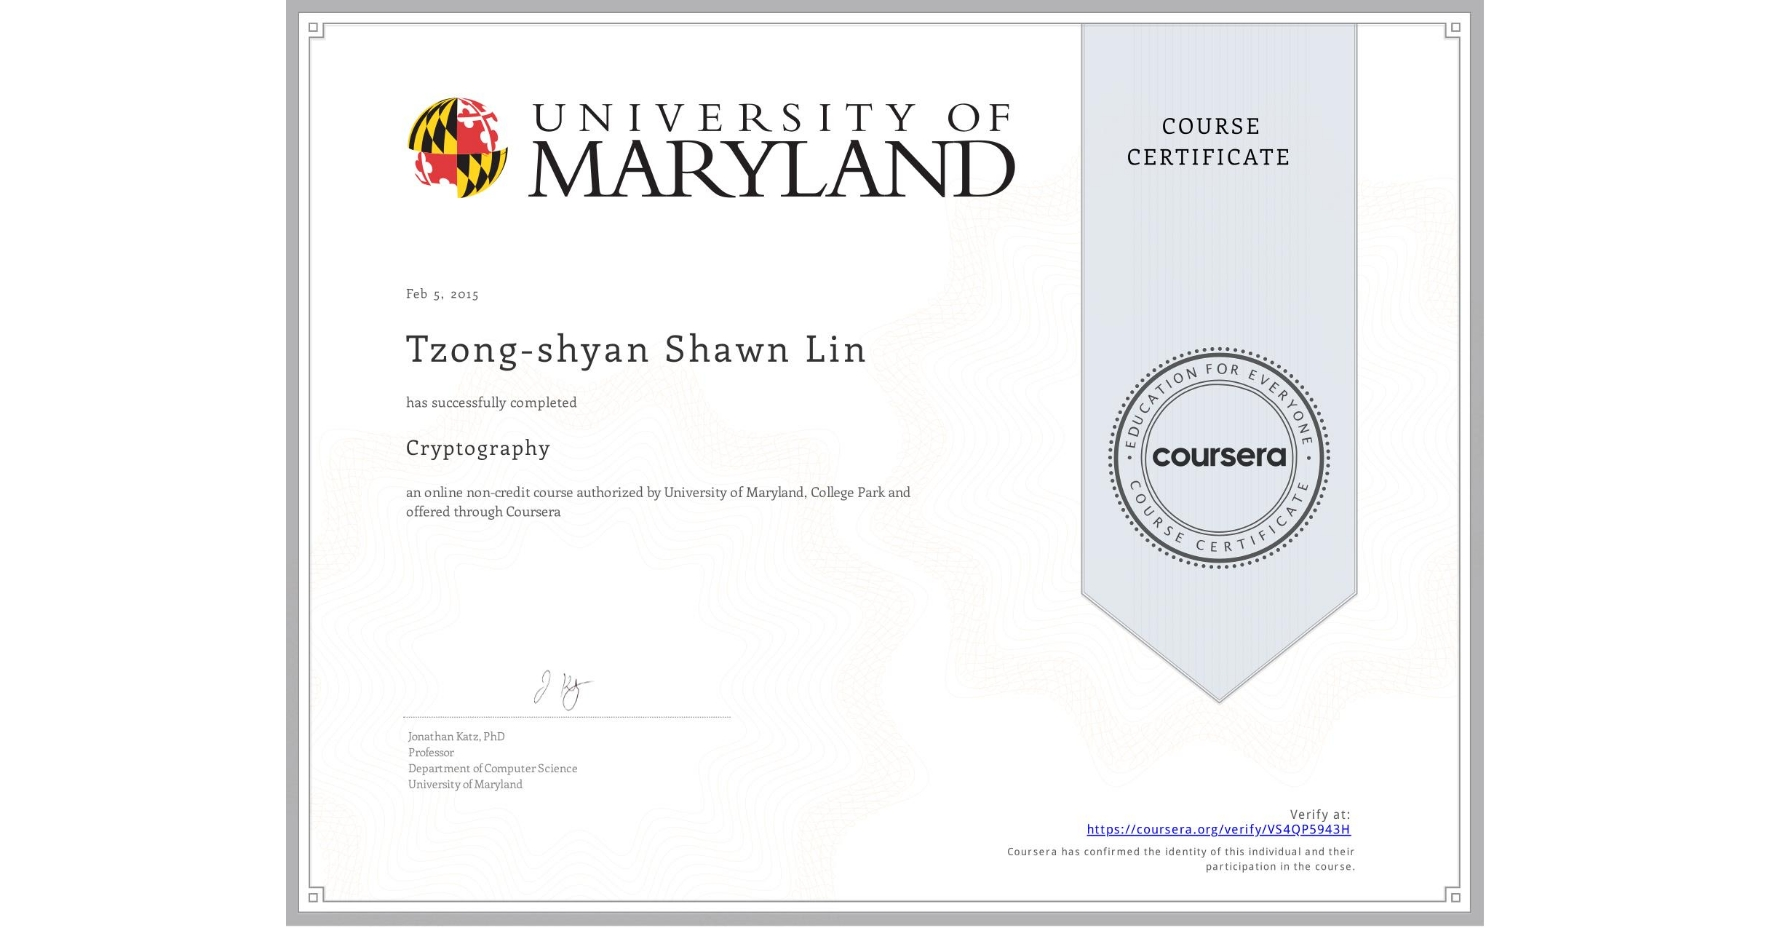 View certificate for Tzong-shyan Shawn Lin, Cryptography, an online non-credit course authorized by University of Maryland, College Park and offered through Coursera